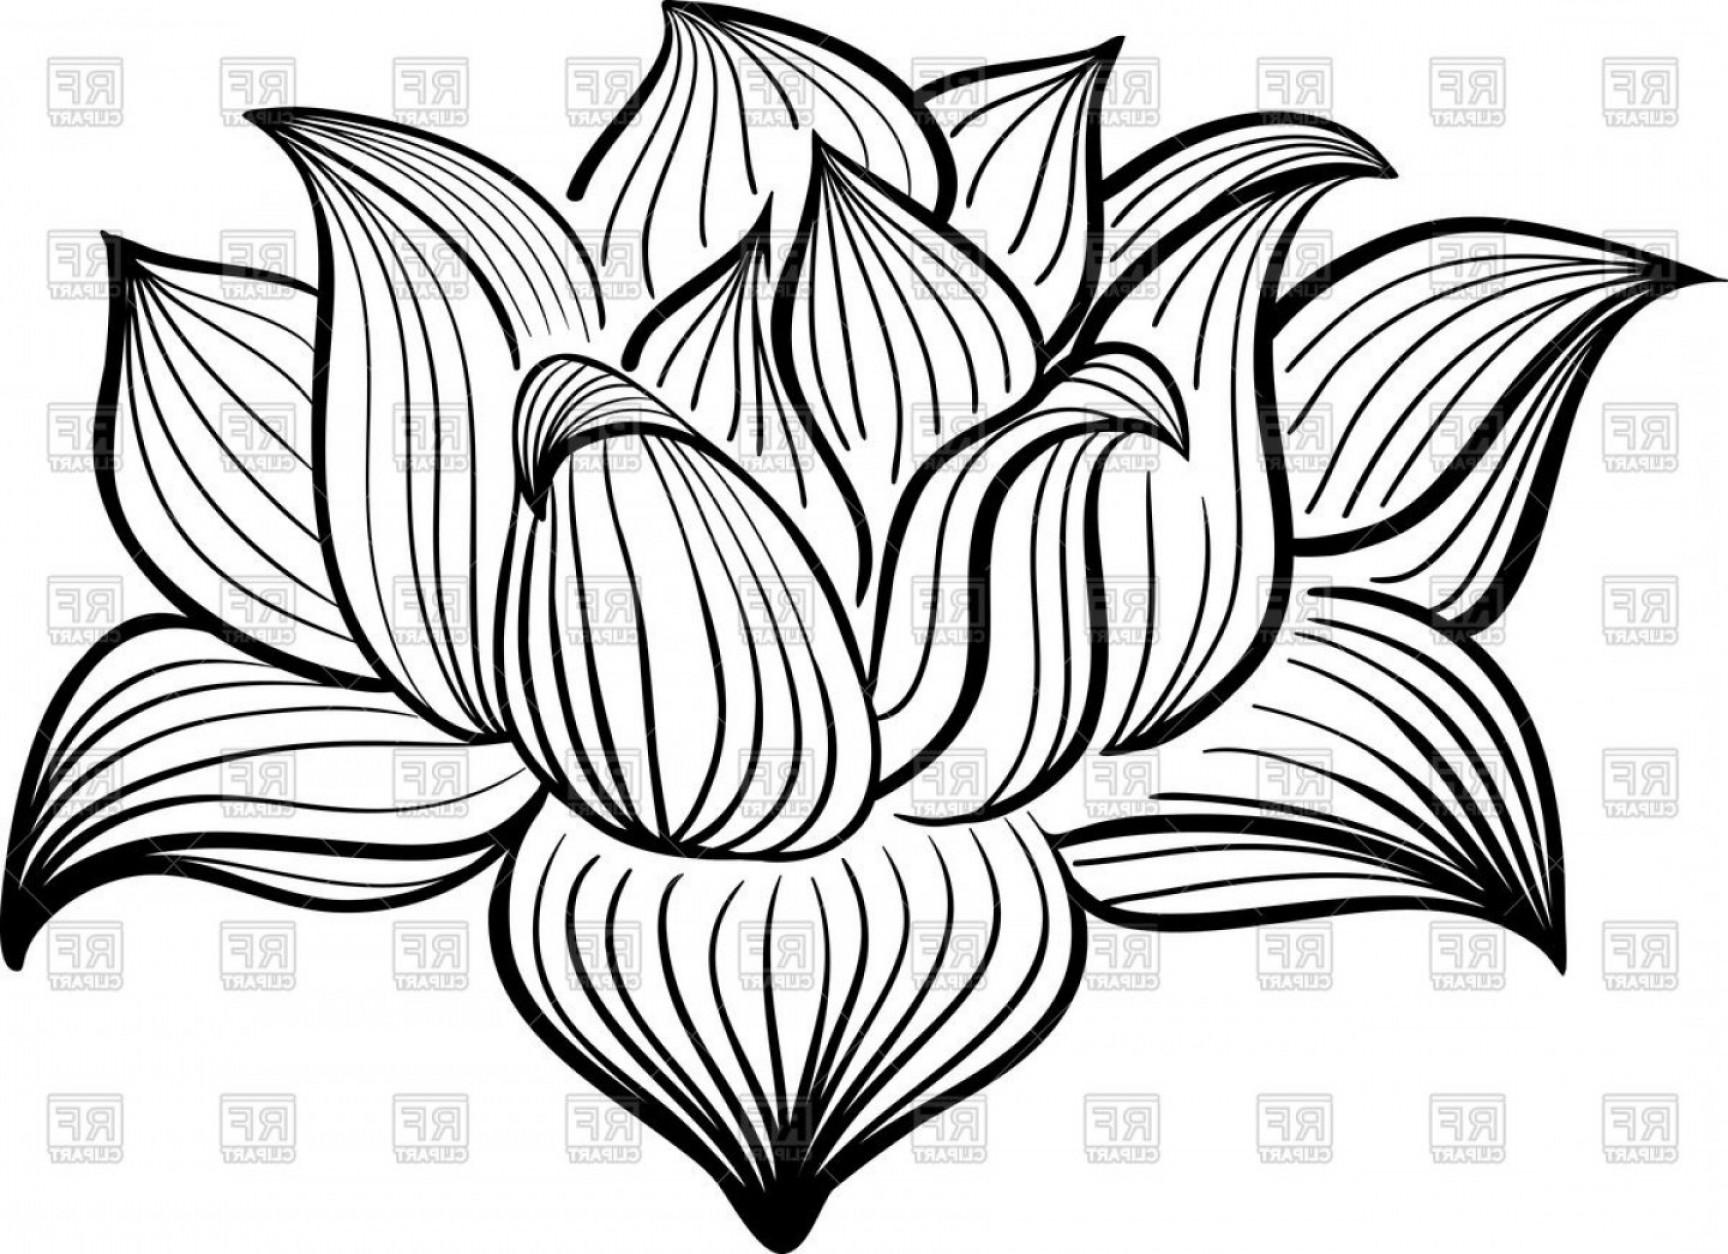 Lotus flower drawing outline at getdrawings free for personal 1728x1254 best free hd outline of lotus flower vector clipart graphic library izmirmasajfo